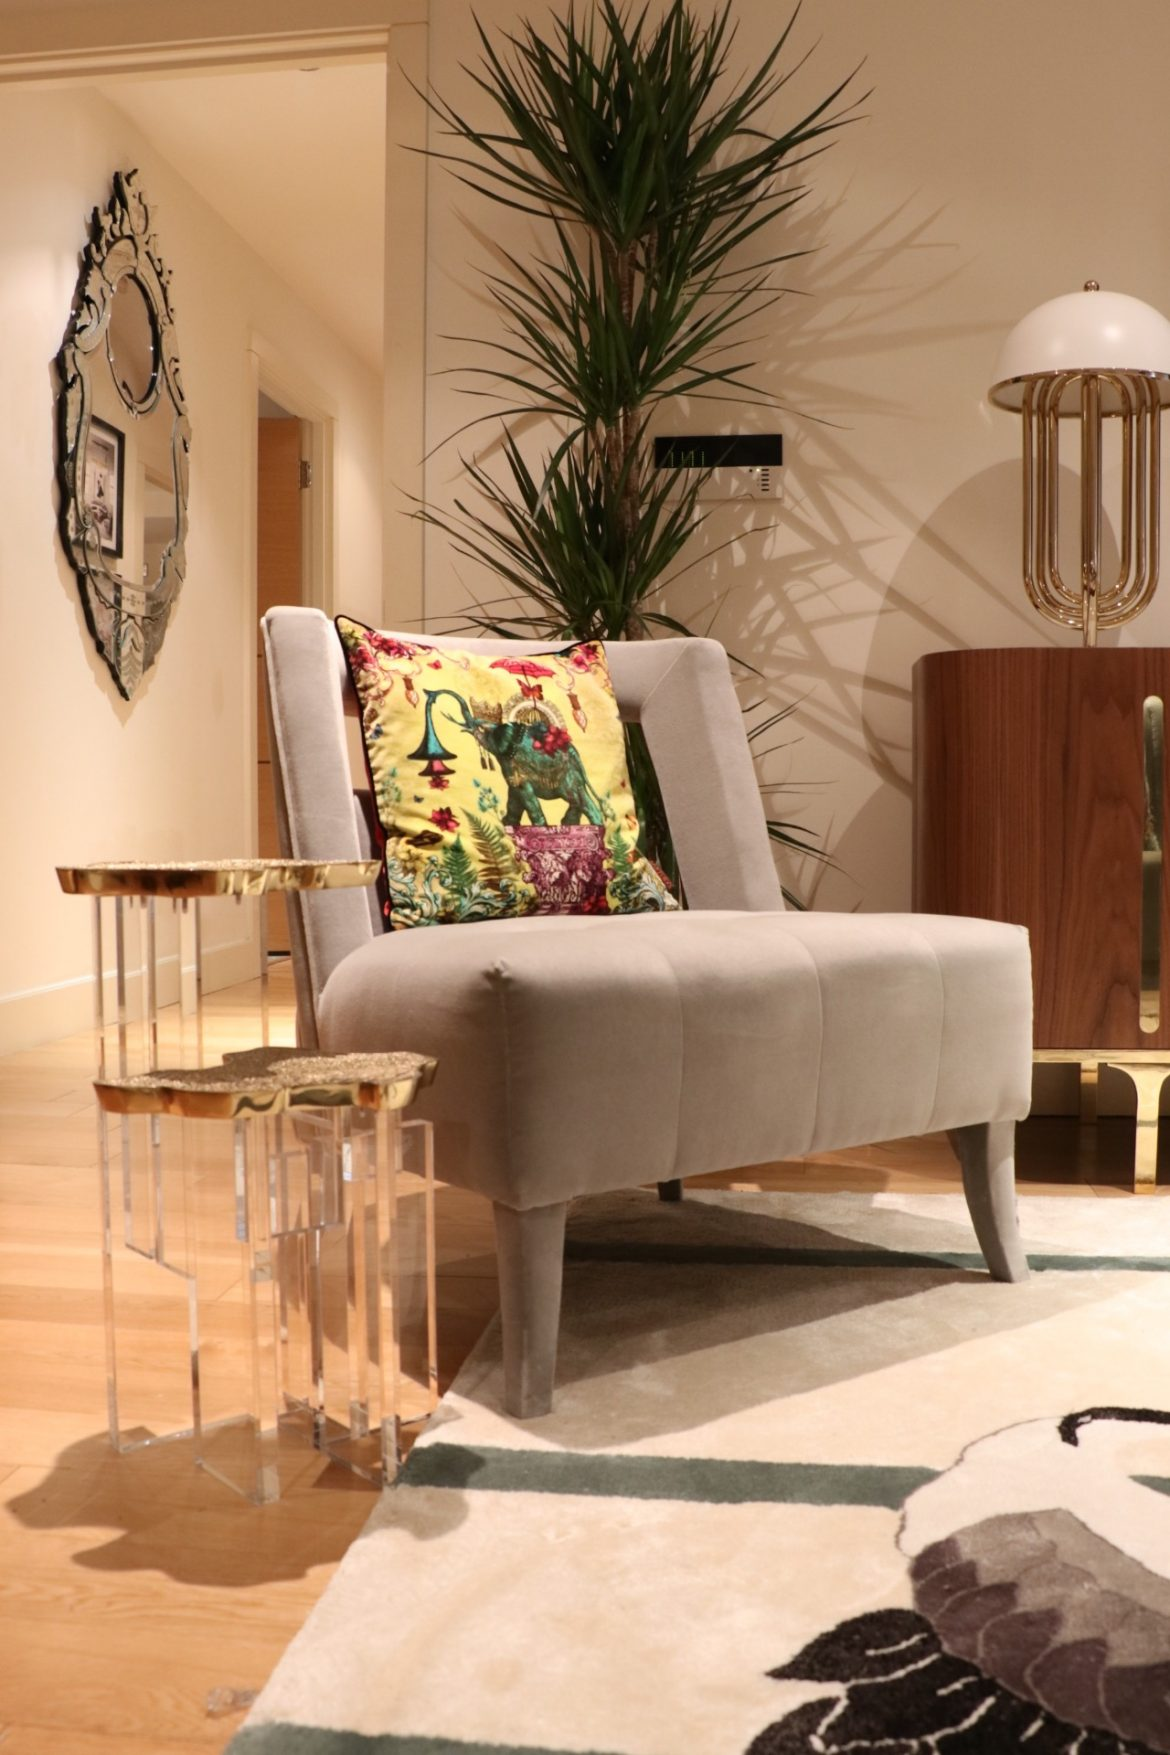 Covet London: Be Inspired By The Most Amazing Furniture Pieces covet london Covet London: Be Inspired By The Most Amazing Furniture Pieces covet london inspired amazing furniture pieces 1